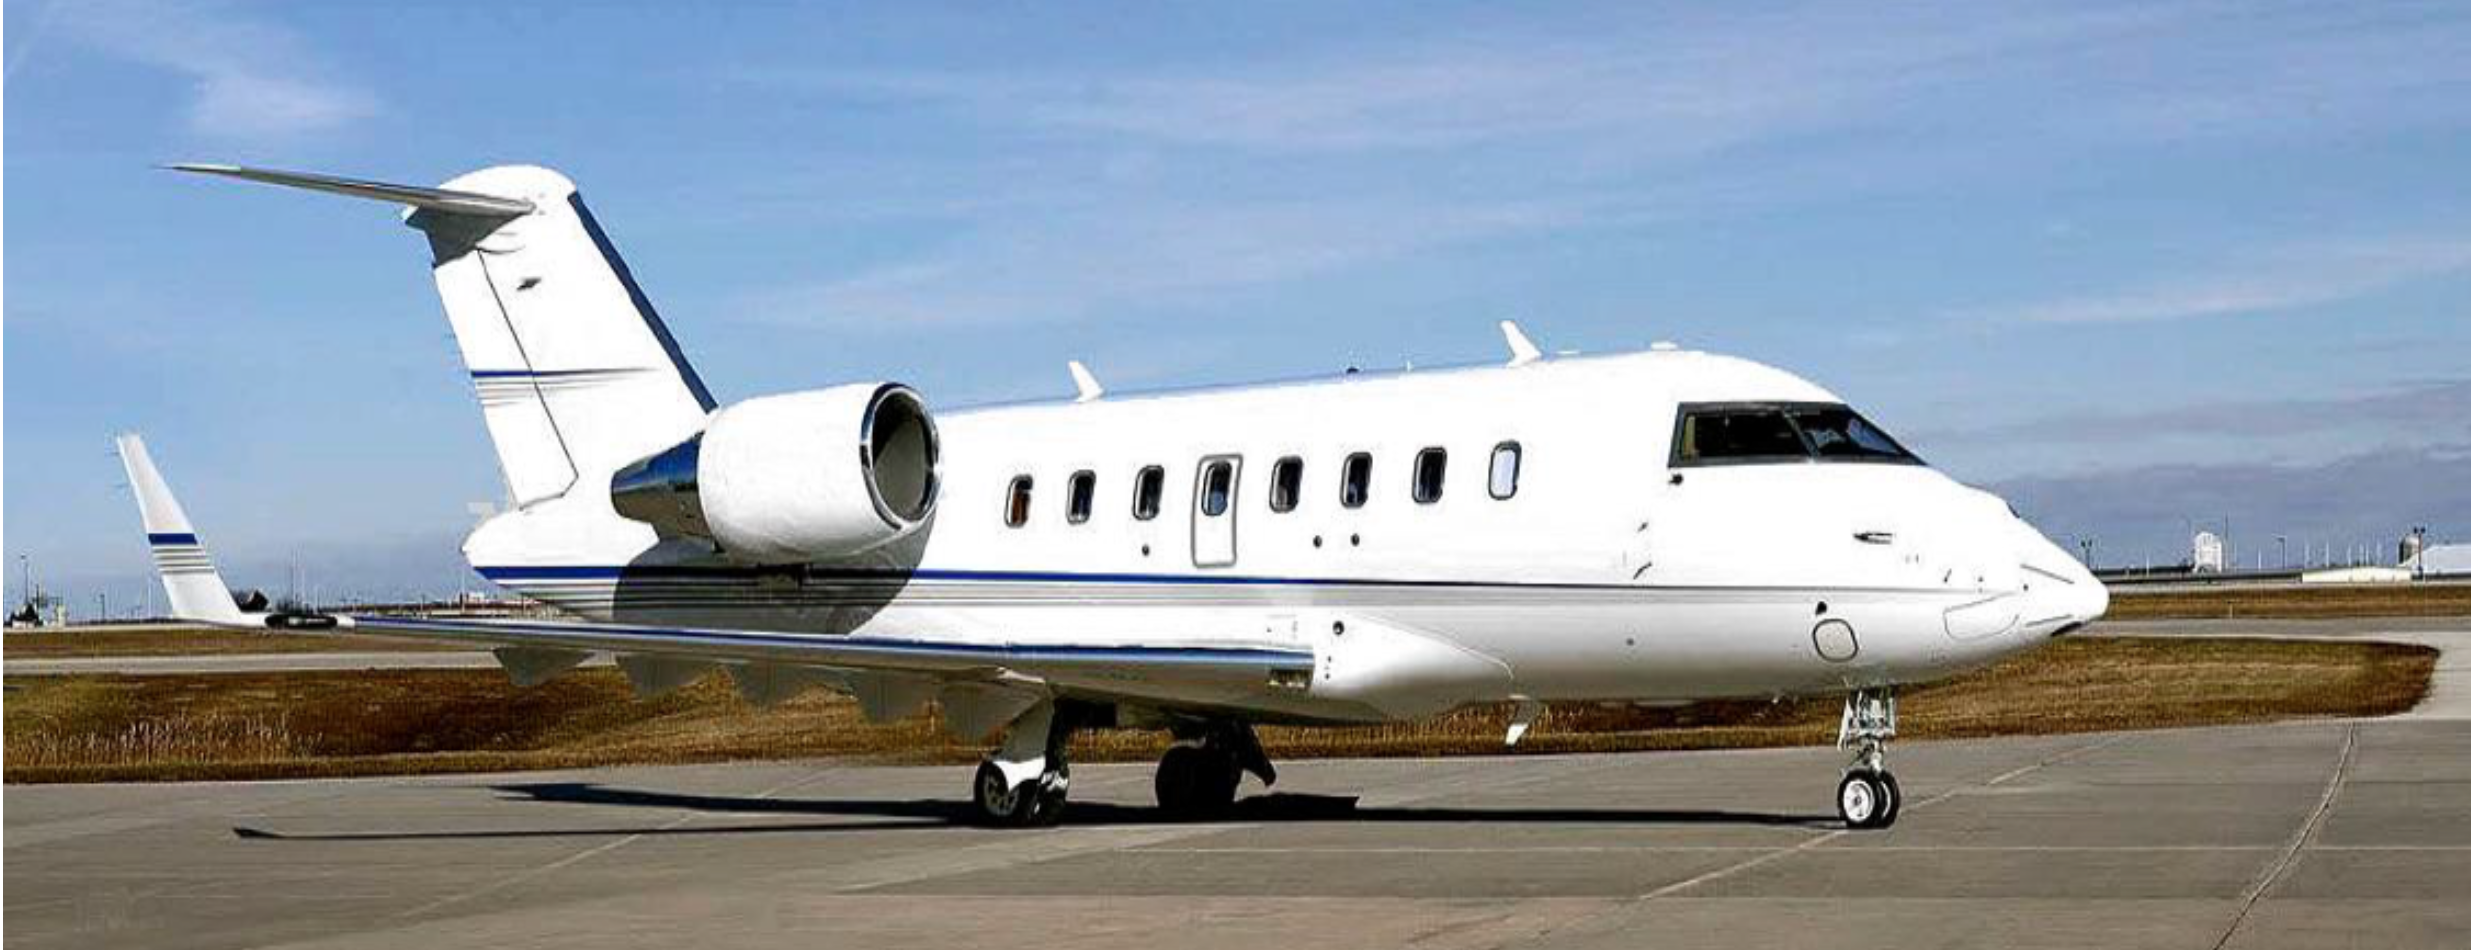 Acquisition and Financing of a Bombardier Challenger